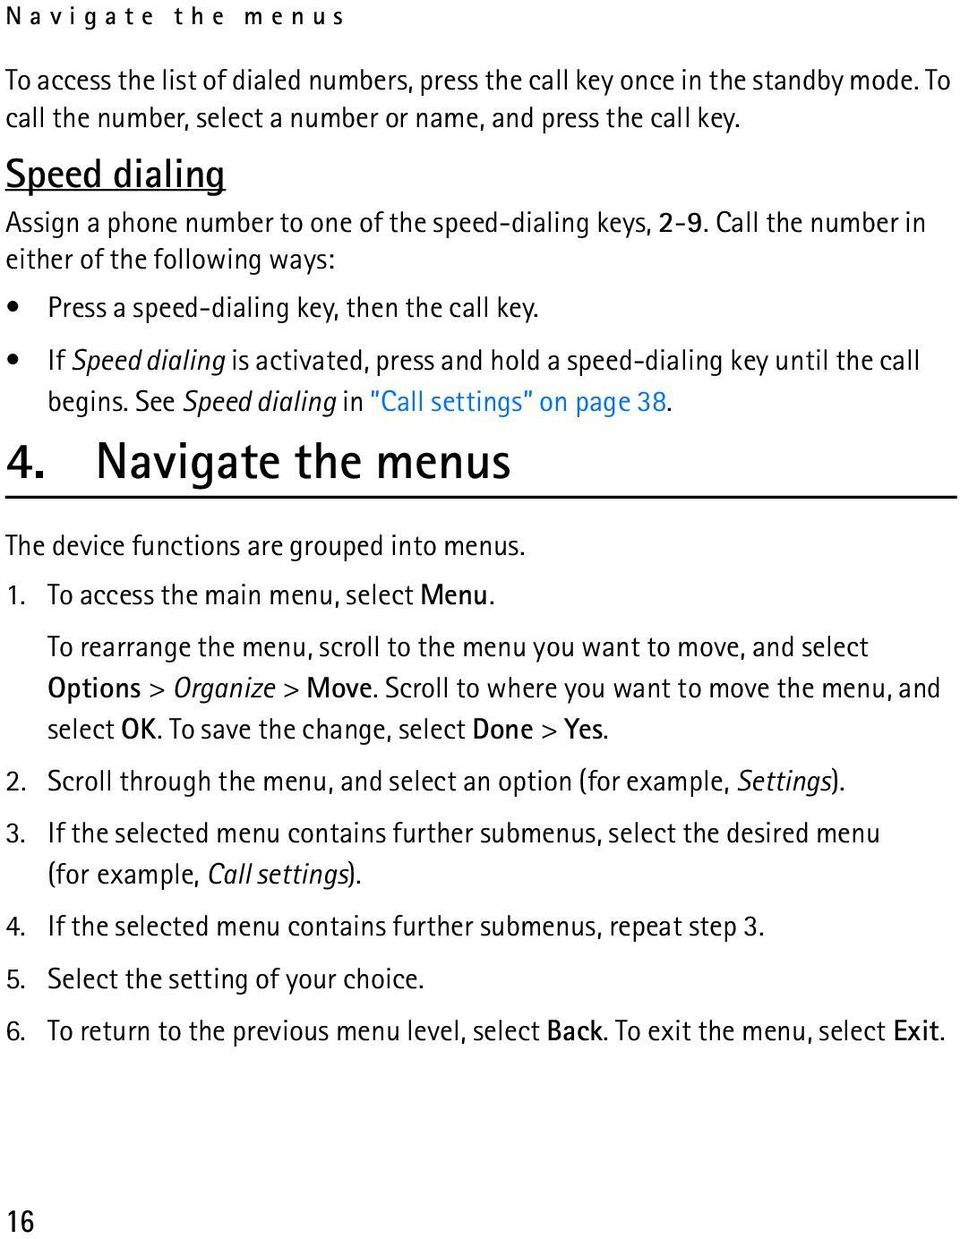 If Speed dialing is activated, press and hold a speed-dialing key until the call begins. See Speed dialing in Call settings on page 38. 4.